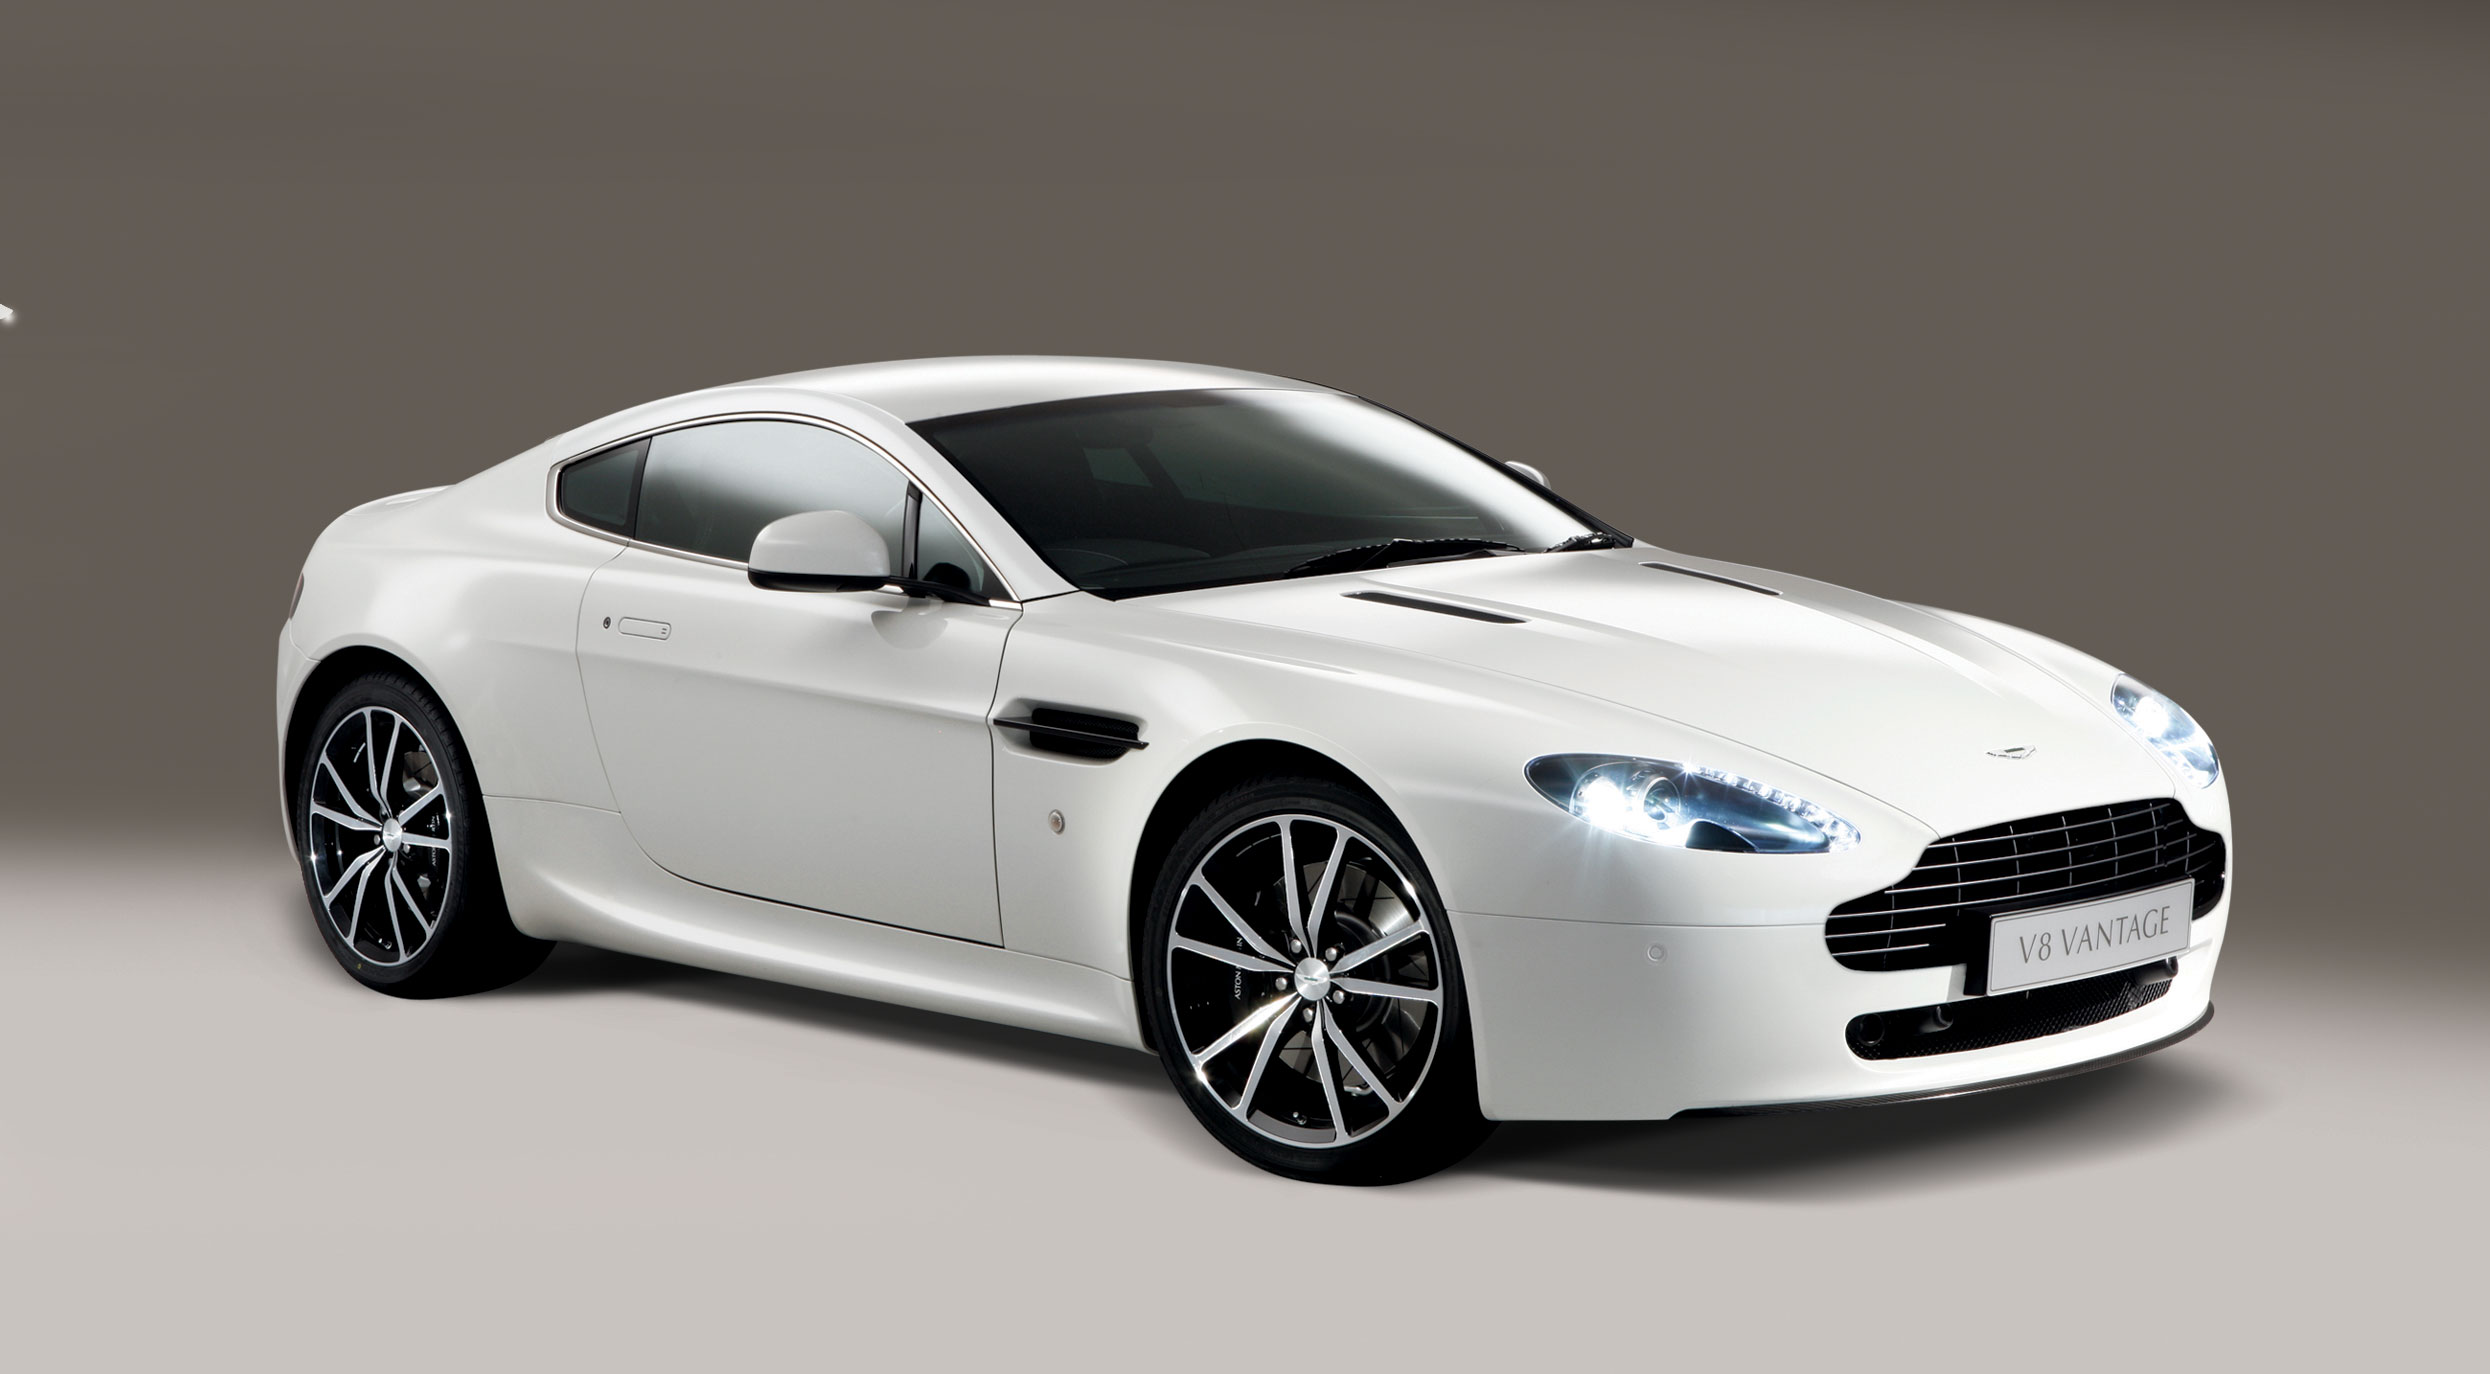 aston martin v8 vantage n420 2010 cartype. Black Bedroom Furniture Sets. Home Design Ideas